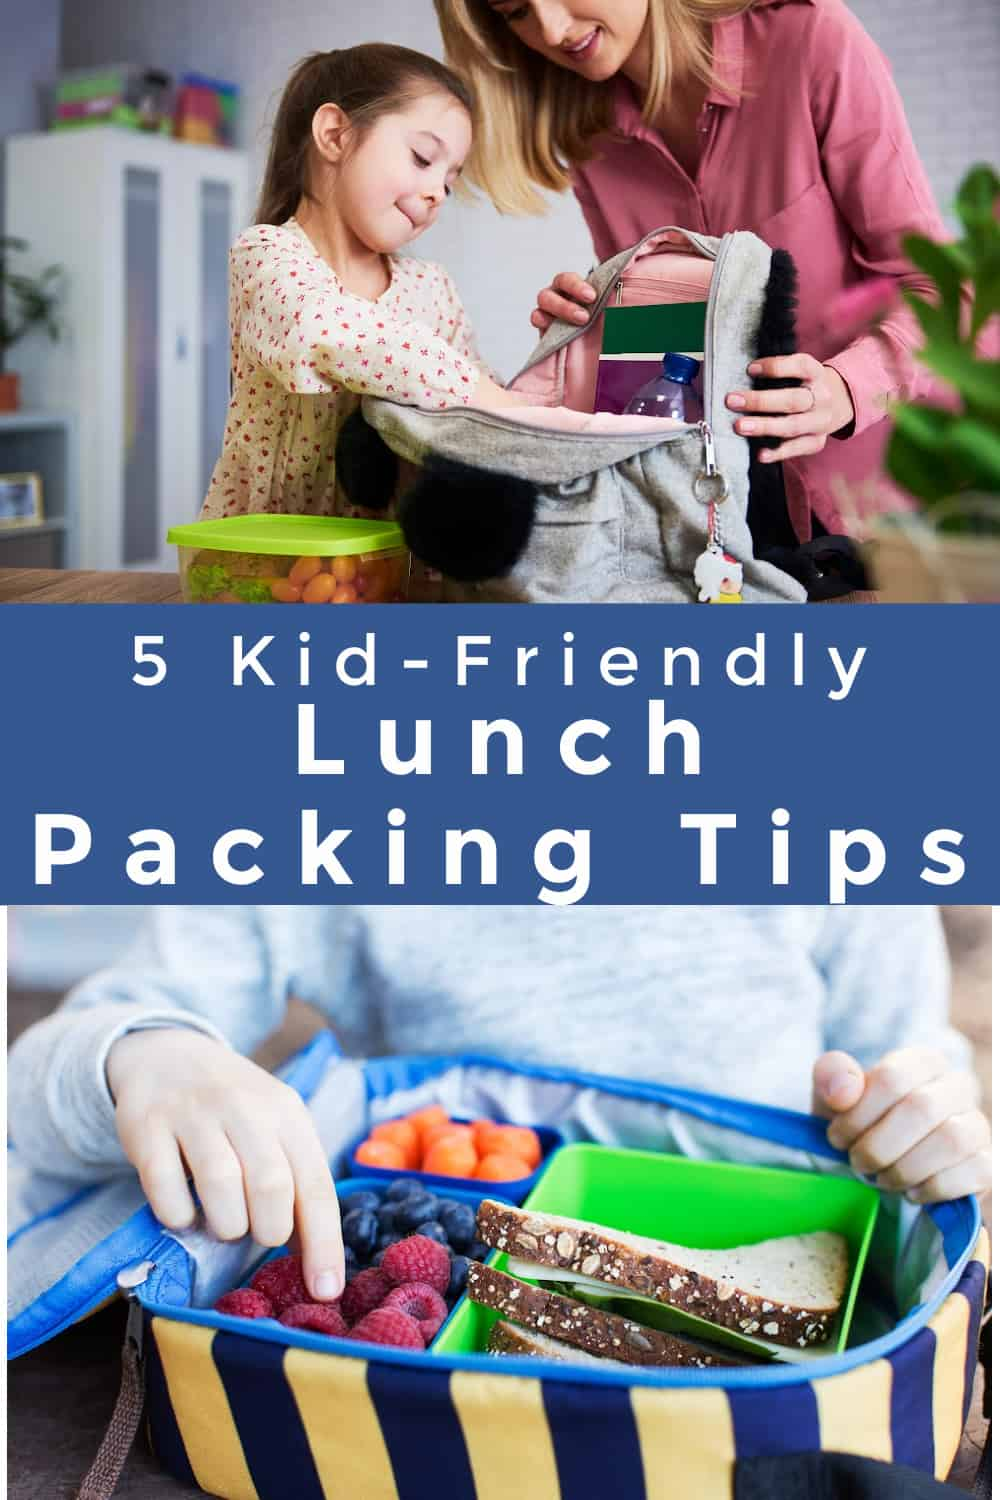 Collage image of girl and woman packing packing kids lunch and insulated lunch bag with raspberries, blueberries, carrots and sandwich and kids' hands reaching for berries with text overlay in between photos.